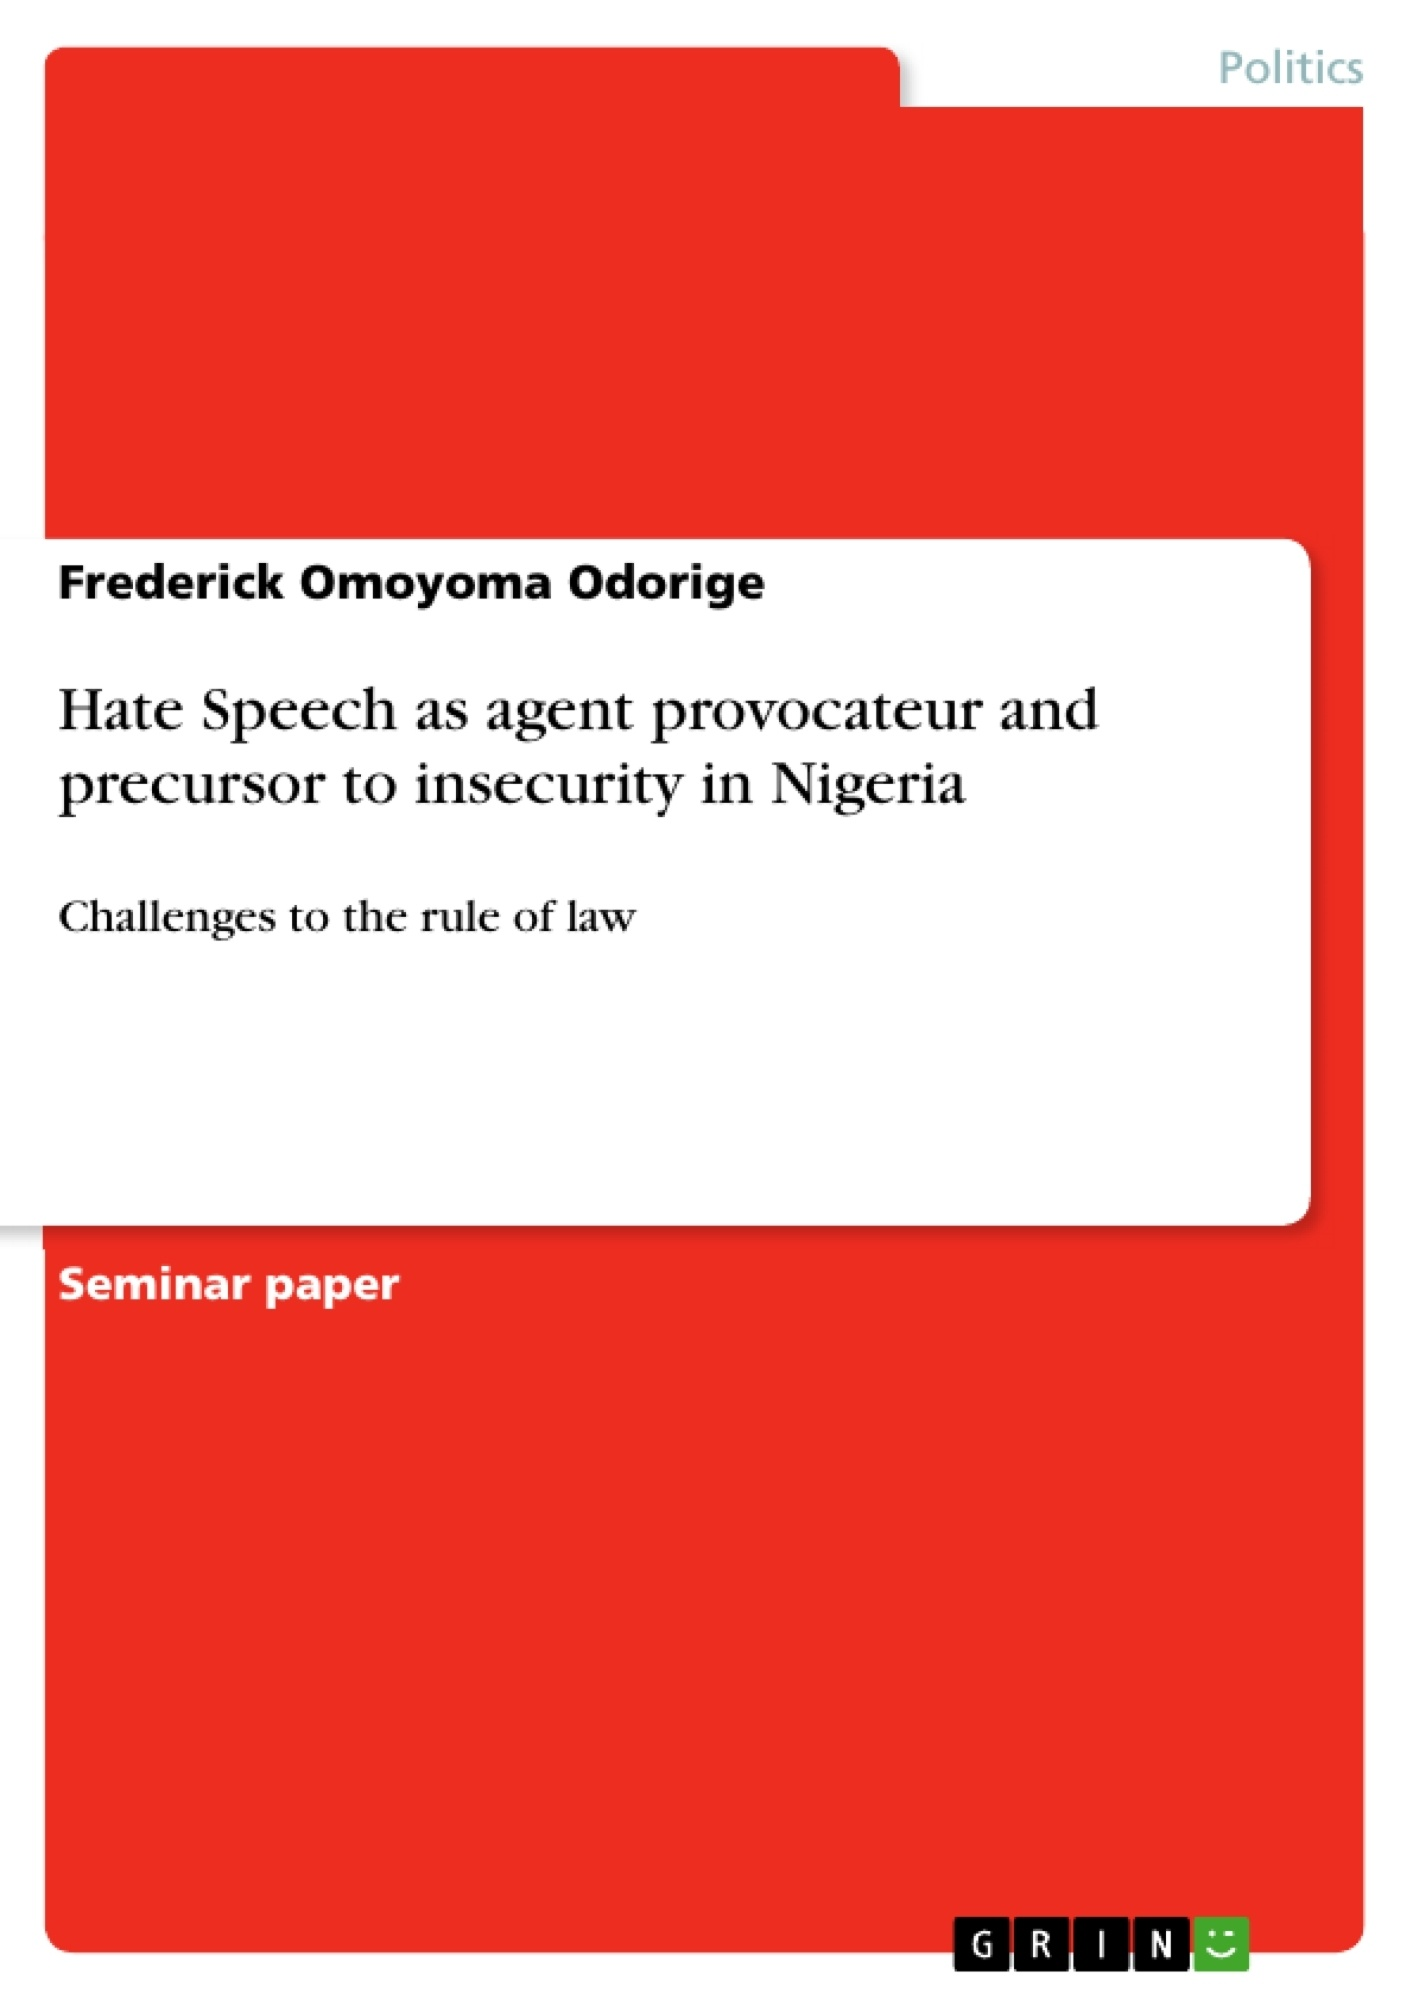 Title: Hate Speech as agent provocateur and precursor to insecurity in Nigeria